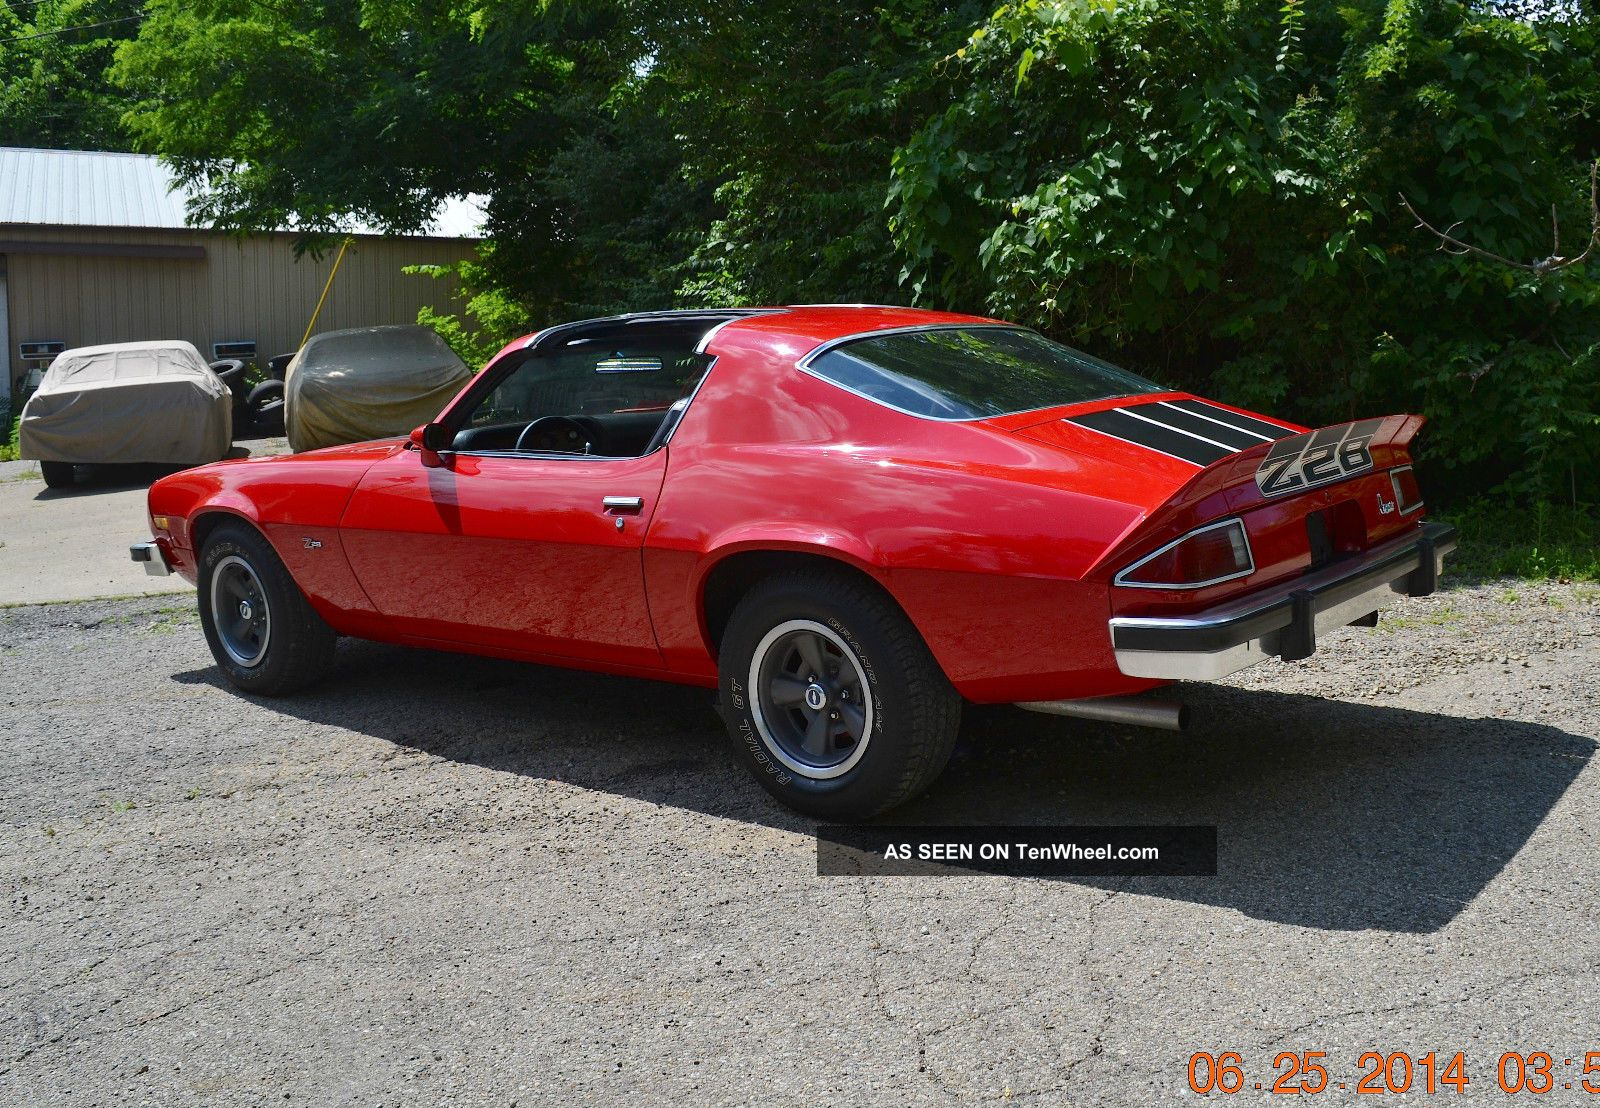 1974 camaro z28 350 4spd factory z   28 factory 4spd solid car 2014 porsche 911 user manual 2014 porsche 911 owners manual pdf